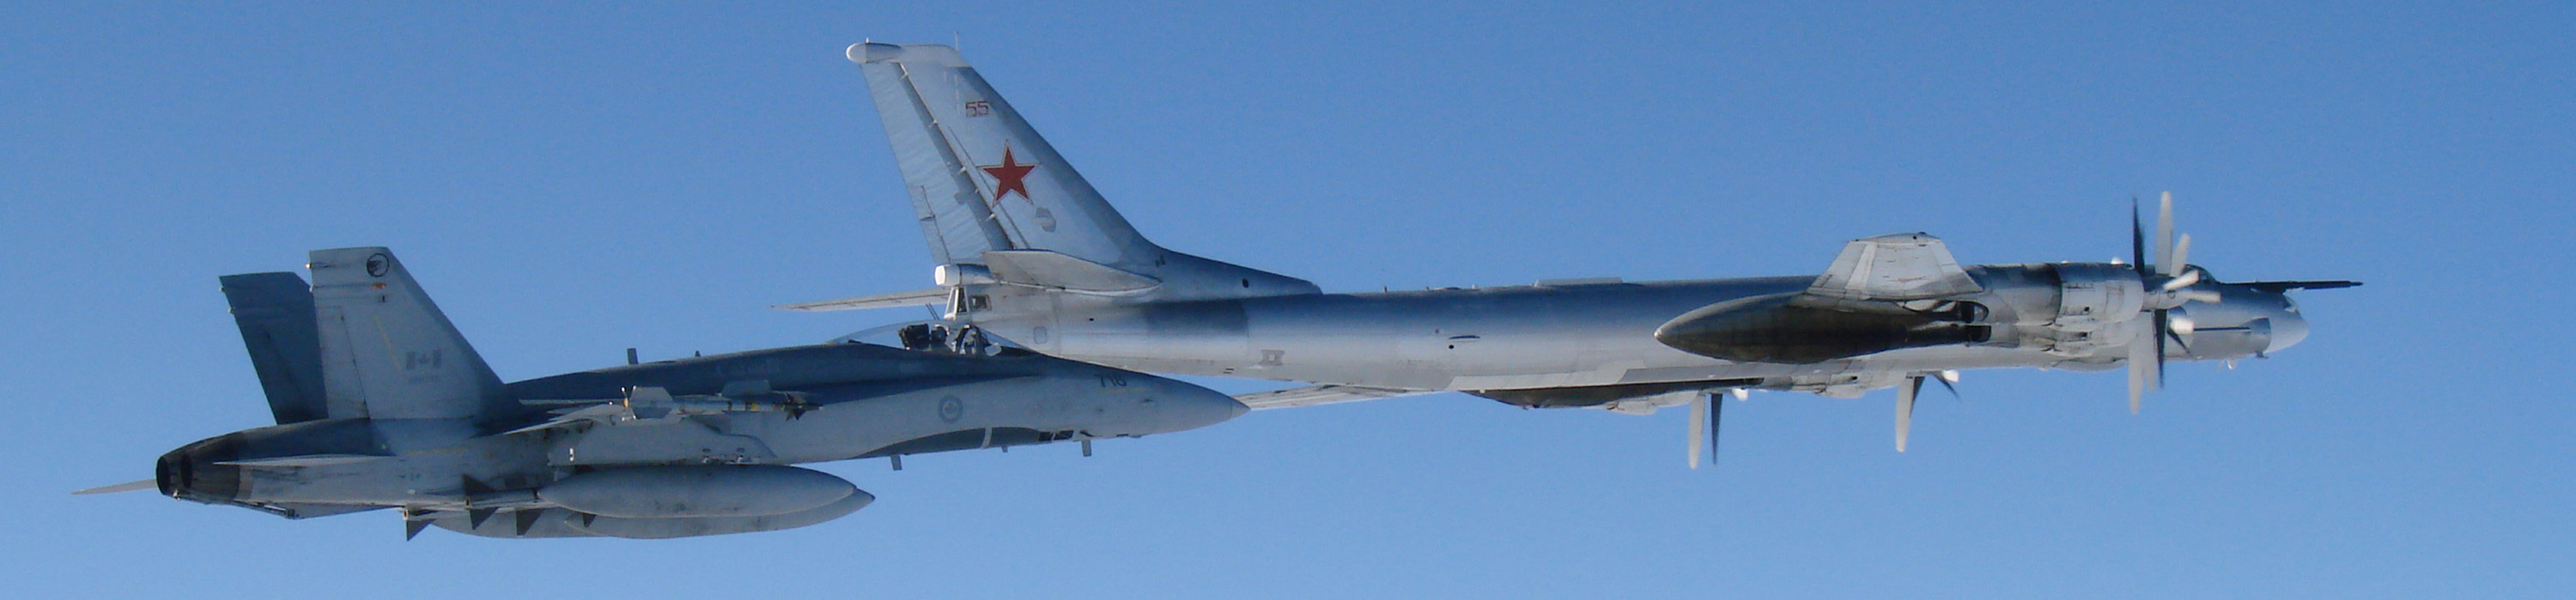 2-cf18-and-russia-bear-bomber-dsc00110-cropped